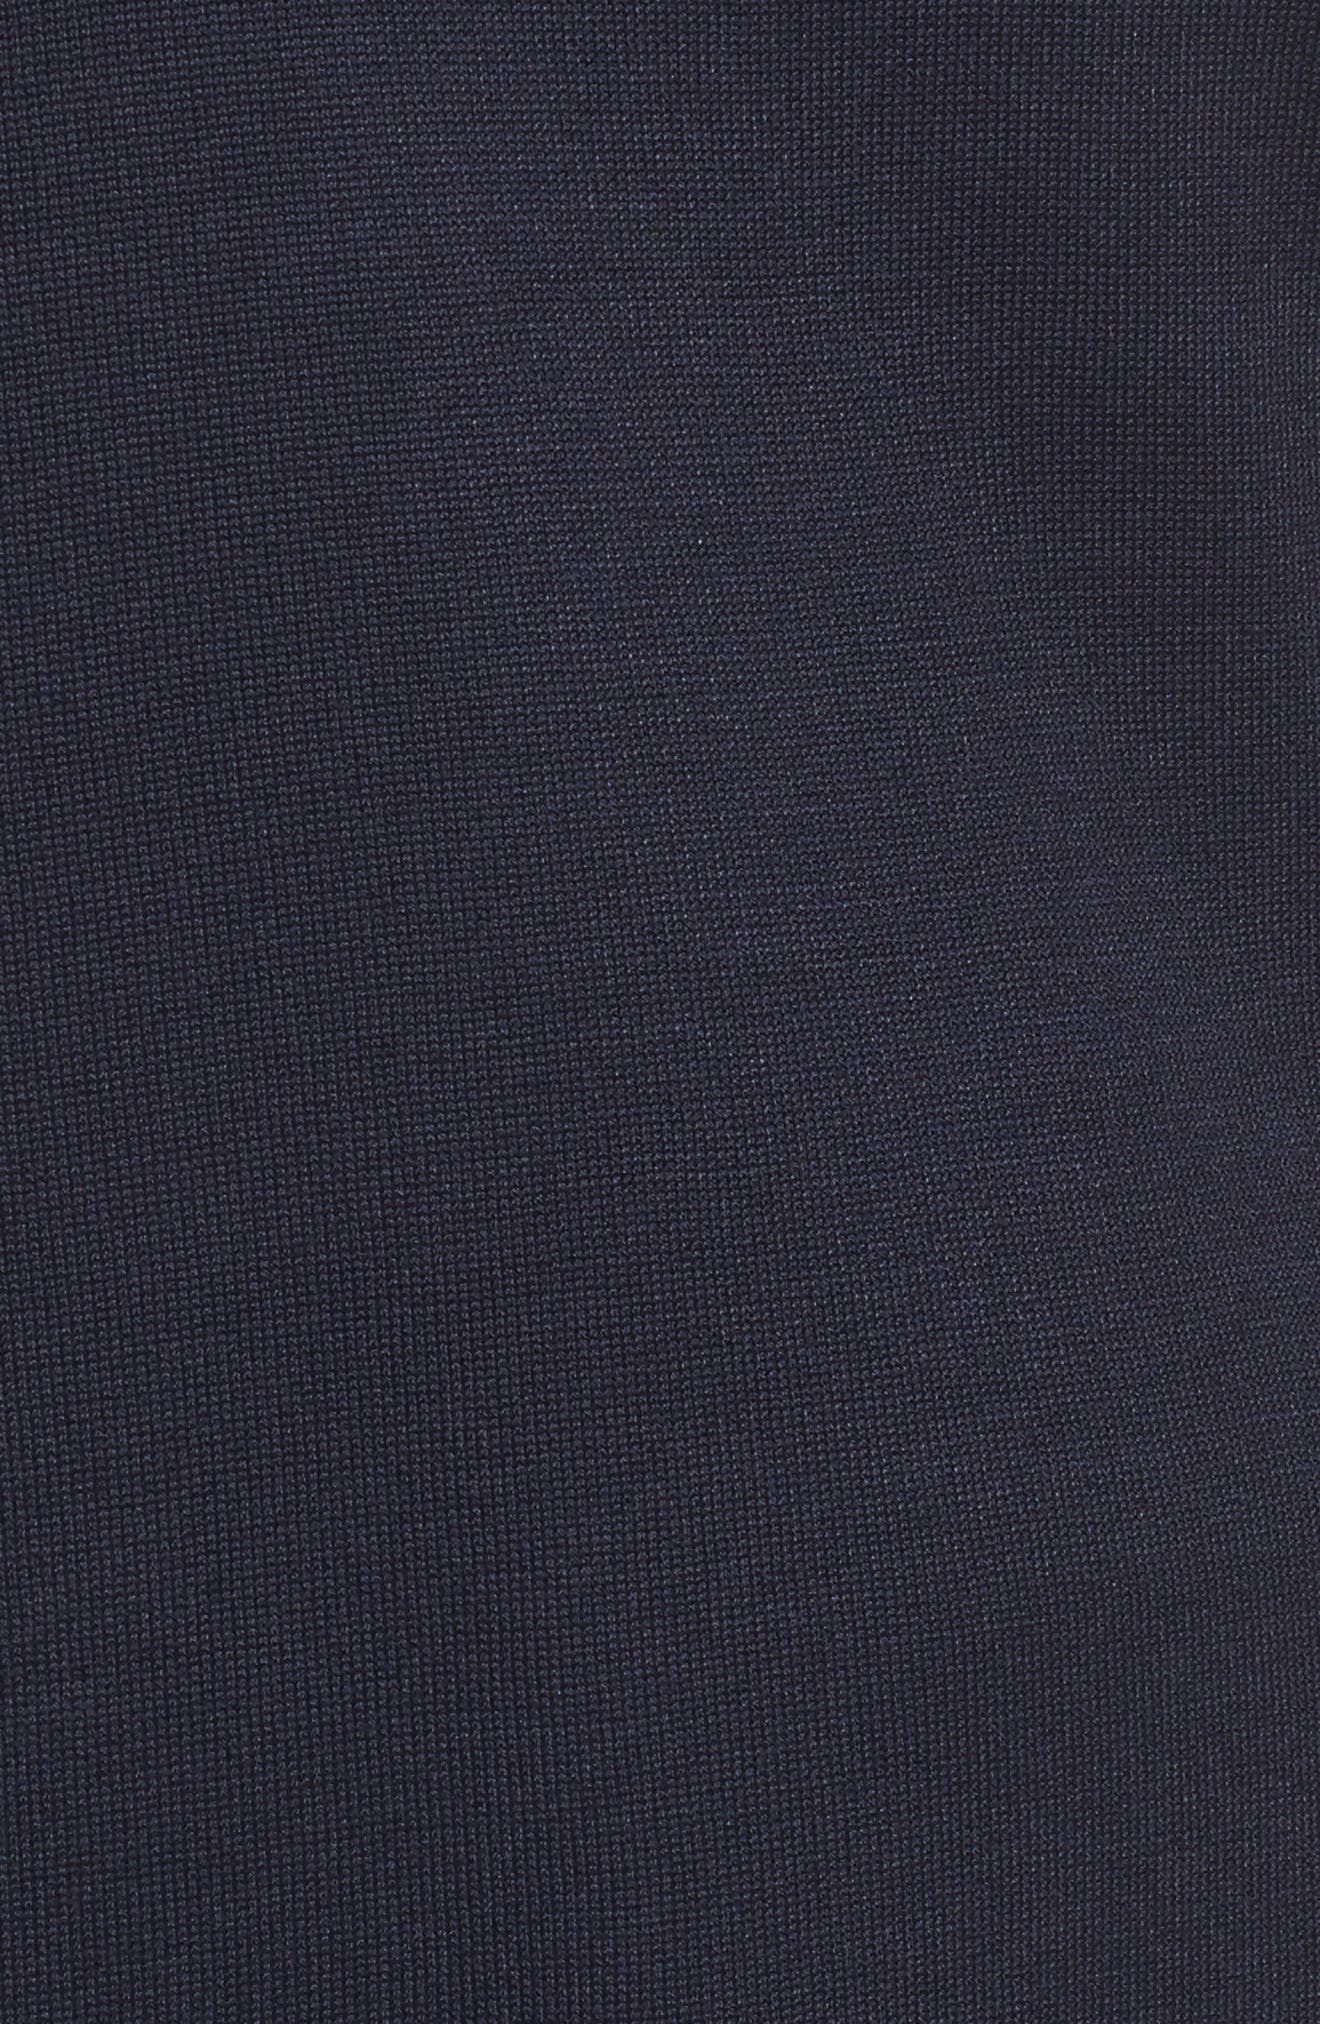 Long Knit Tank,                             Alternate thumbnail 5, color,                             Navy